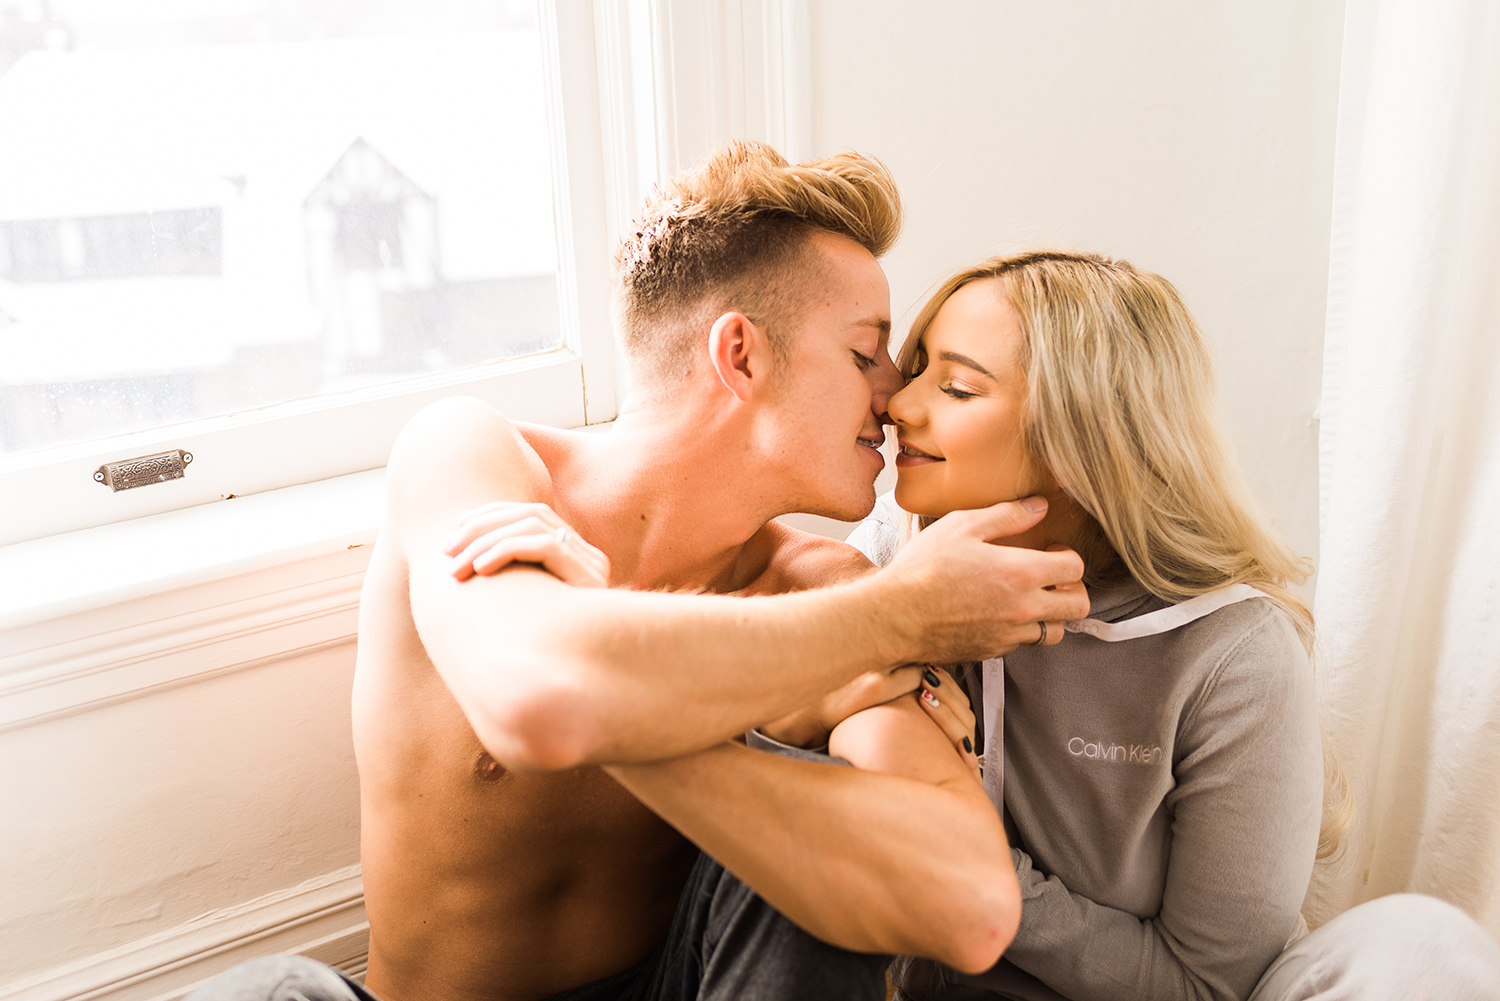 in-home-couples-session-colorado-photographer-21.jpg